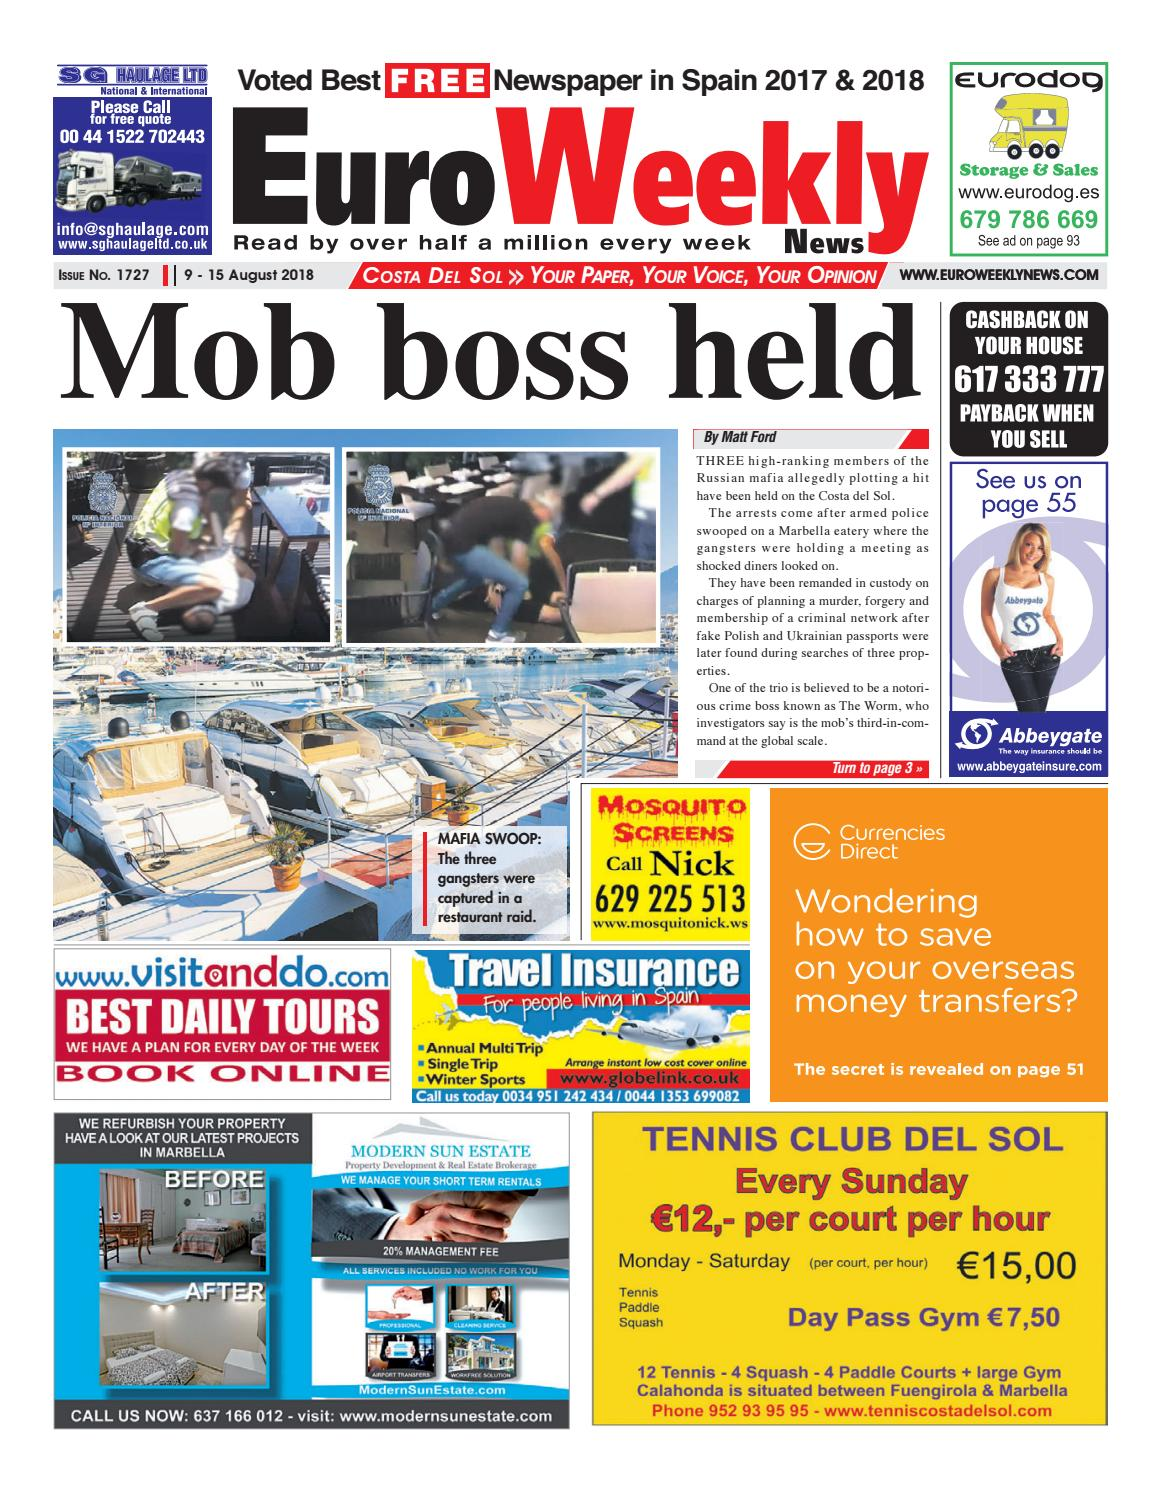 63bf7324f49f3 Euro Weekly News - Costa del Sol 9 - 15 August 2018 Issue 1727 by ...